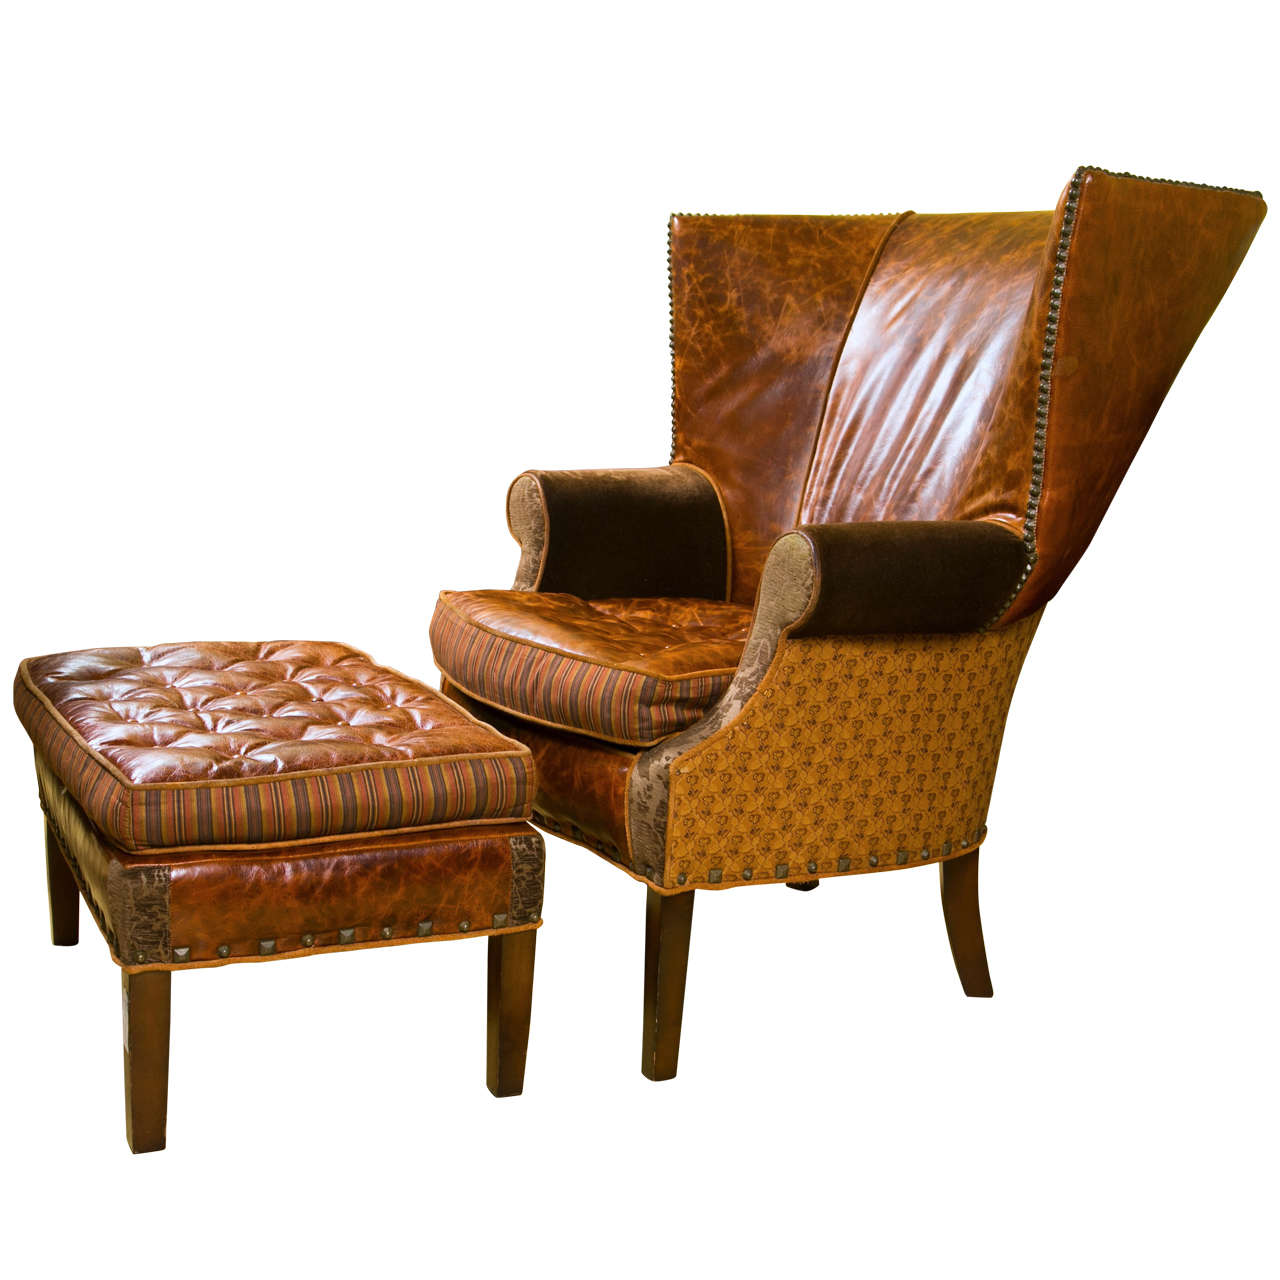 Bon A Jeff Zimmerman Wingback Chair And Matching Ottoman For Sale